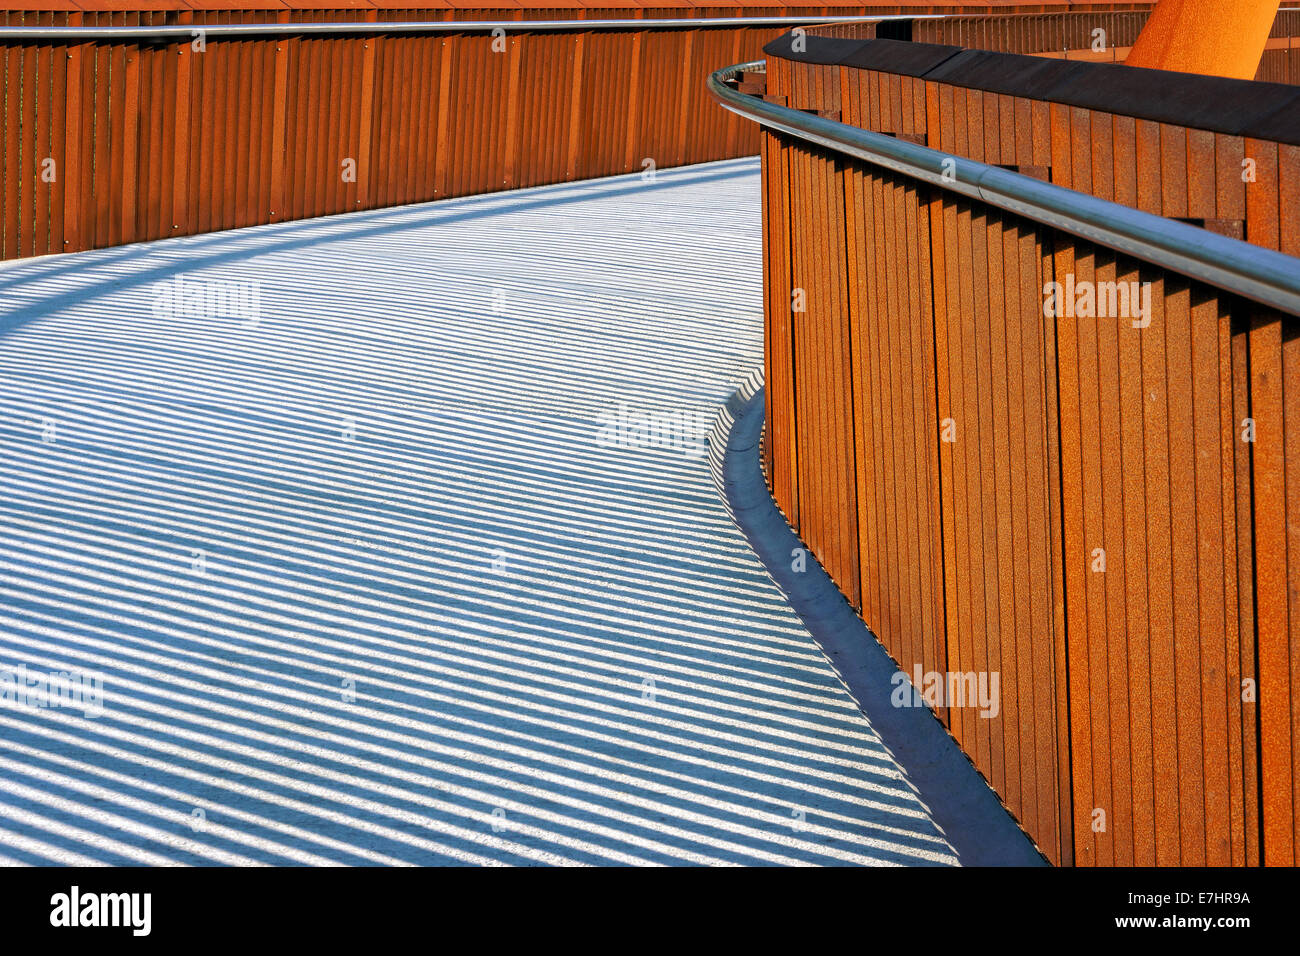 pedestrian bridge with handrail and shadows - Stock Image